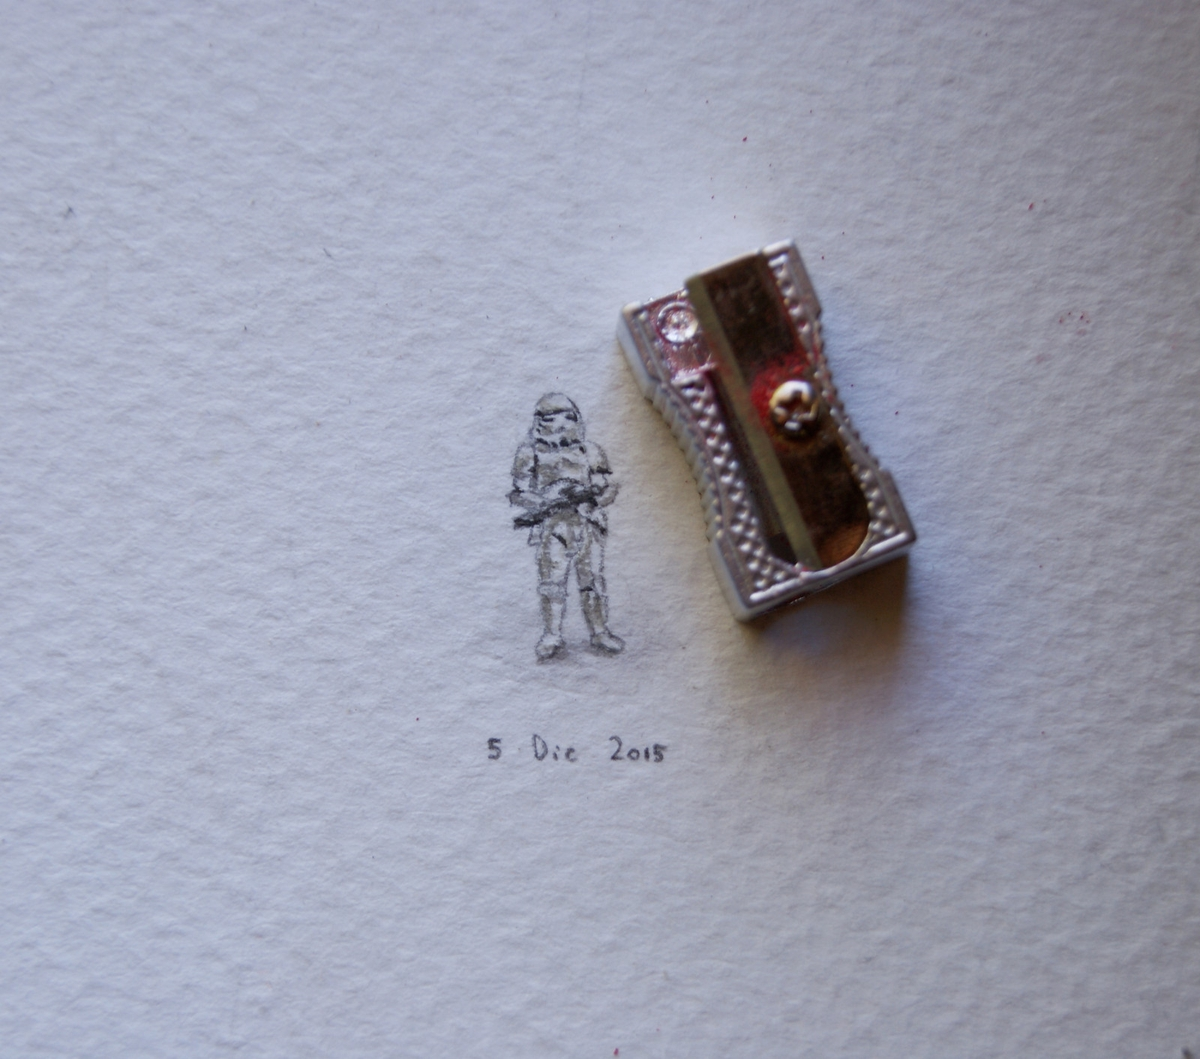 12-Star-Wars-Stormtrooper-Guillermo-Méndez-Mr-Luigi-Miniature-Drawings-and-Watercolor-Paintings-www-designstack-co